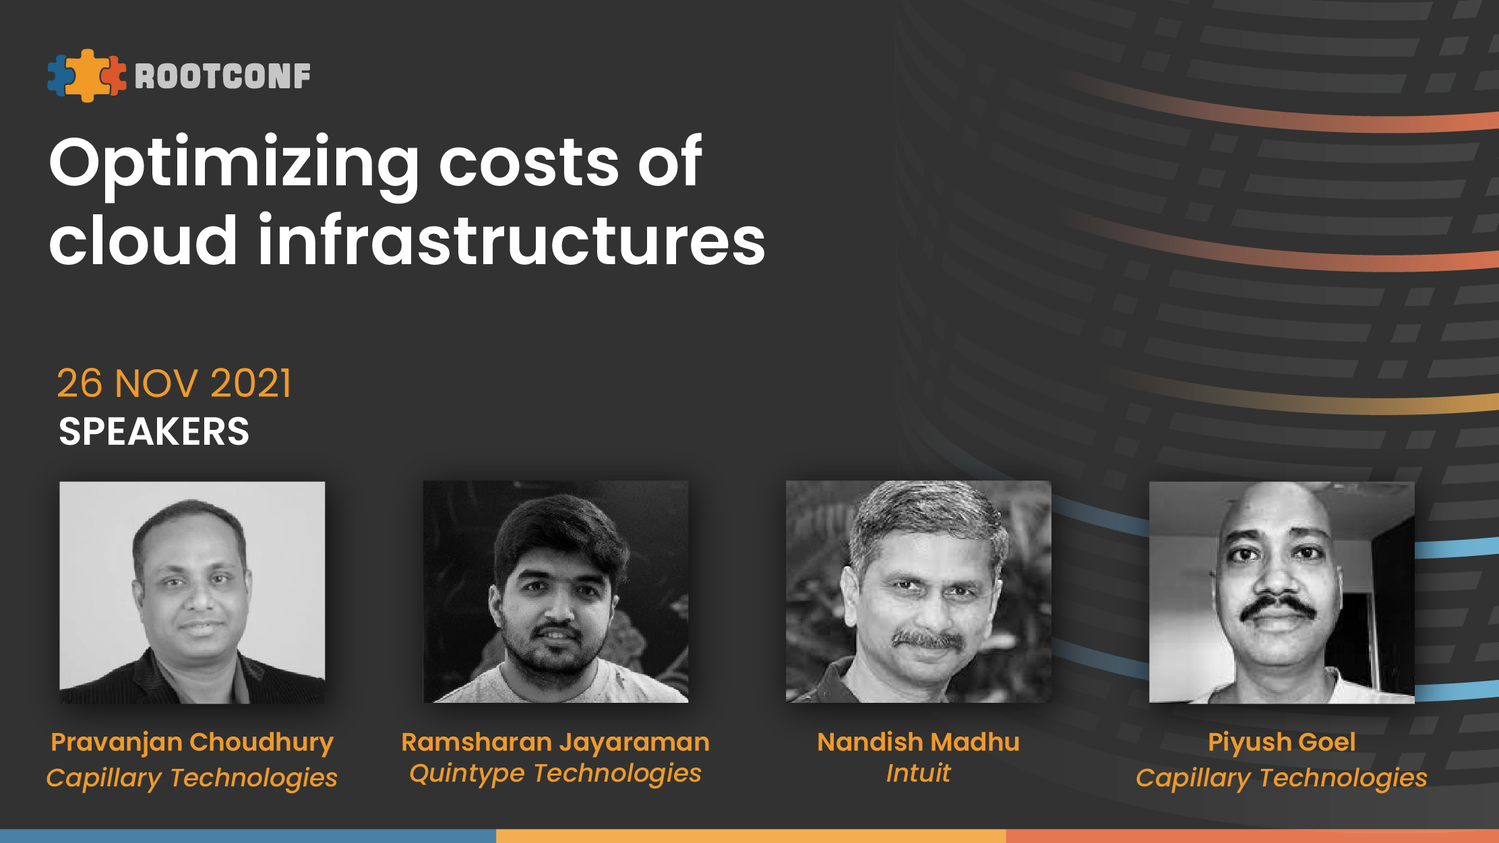 Optimizing costs of cloud infrastructures